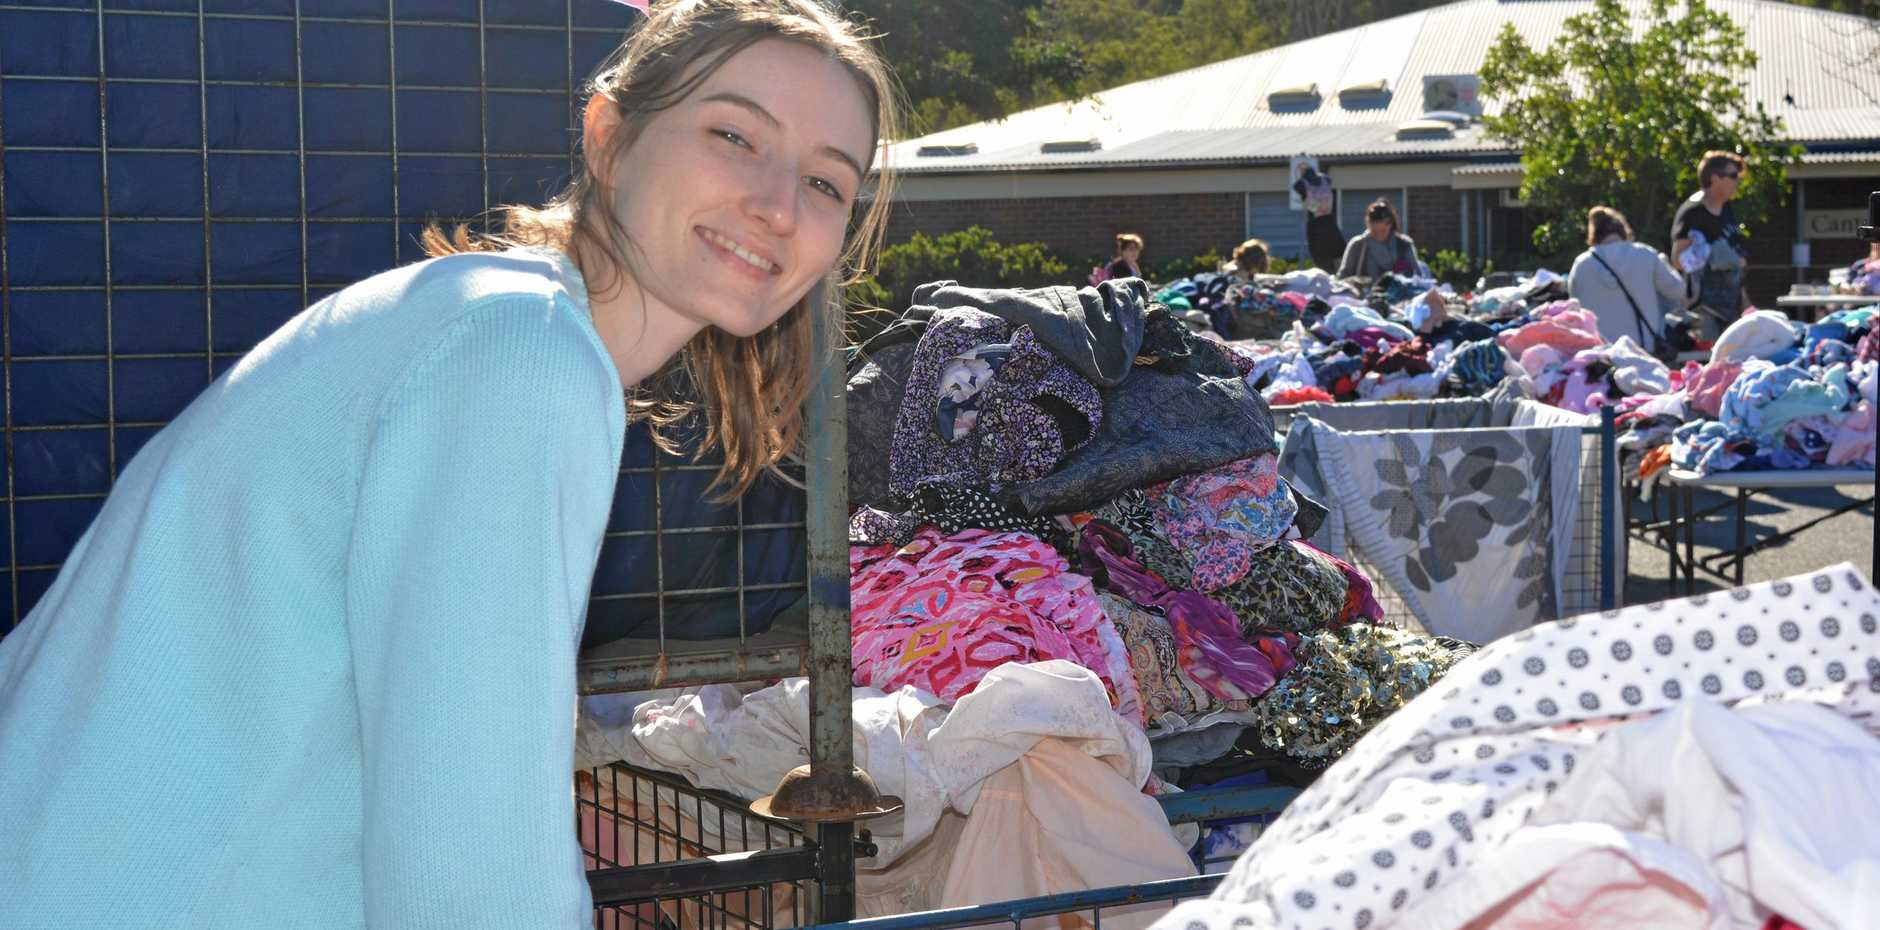 GIANT SALE: Sadie Burton looks for treasures at the Lifeline Mega Sale.